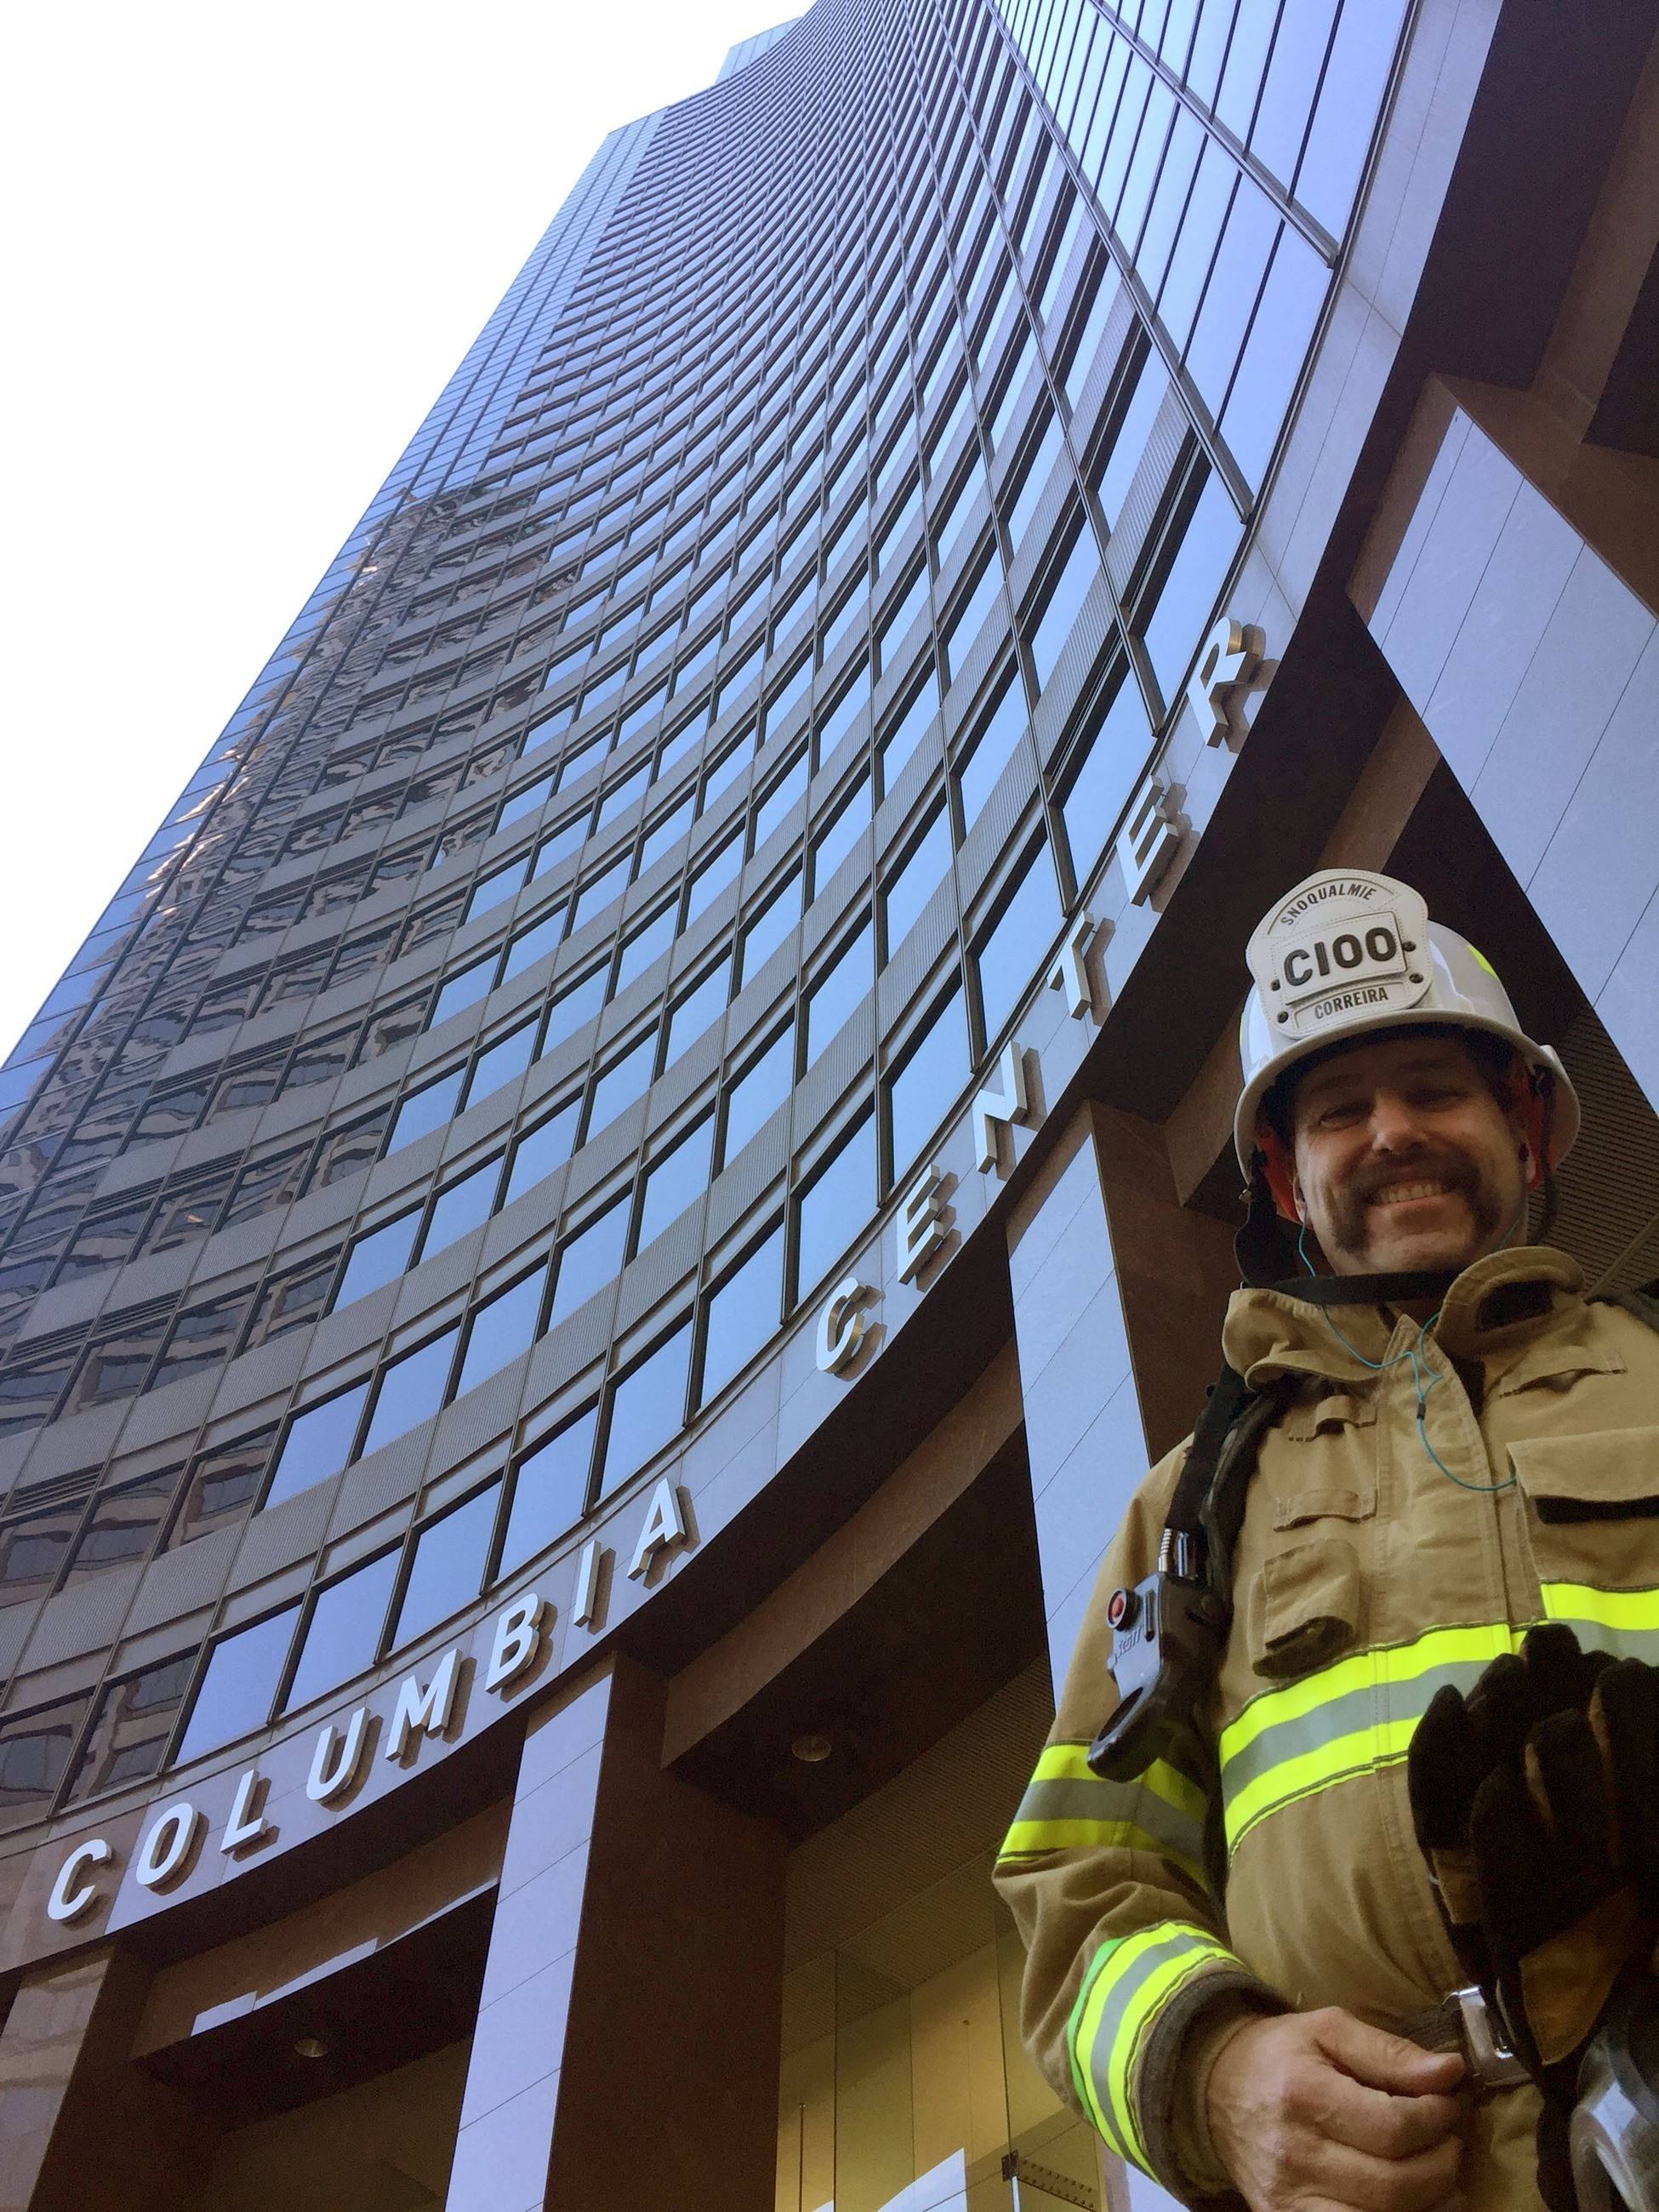 Chief 2018 Stair Climb (JPG)